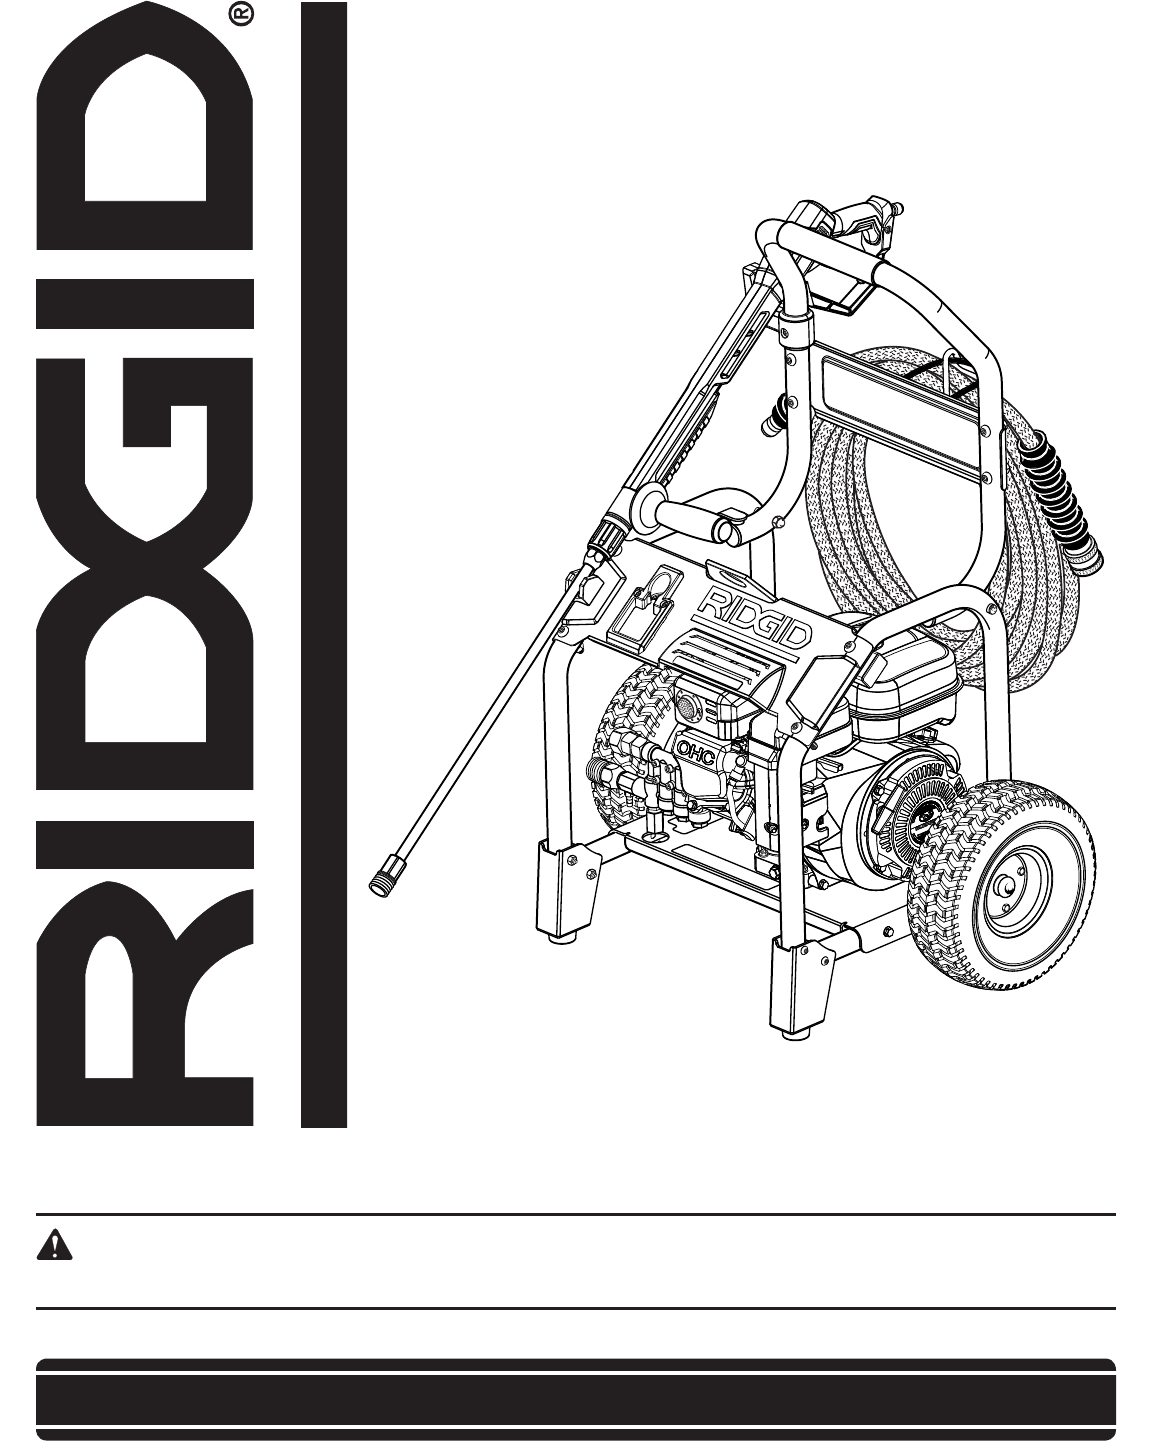 ridgid pressure washer rd80763 user guide manualsonline com rh lawnandgarden manualsonline com ridgid owners manuals ridgid planer user manual